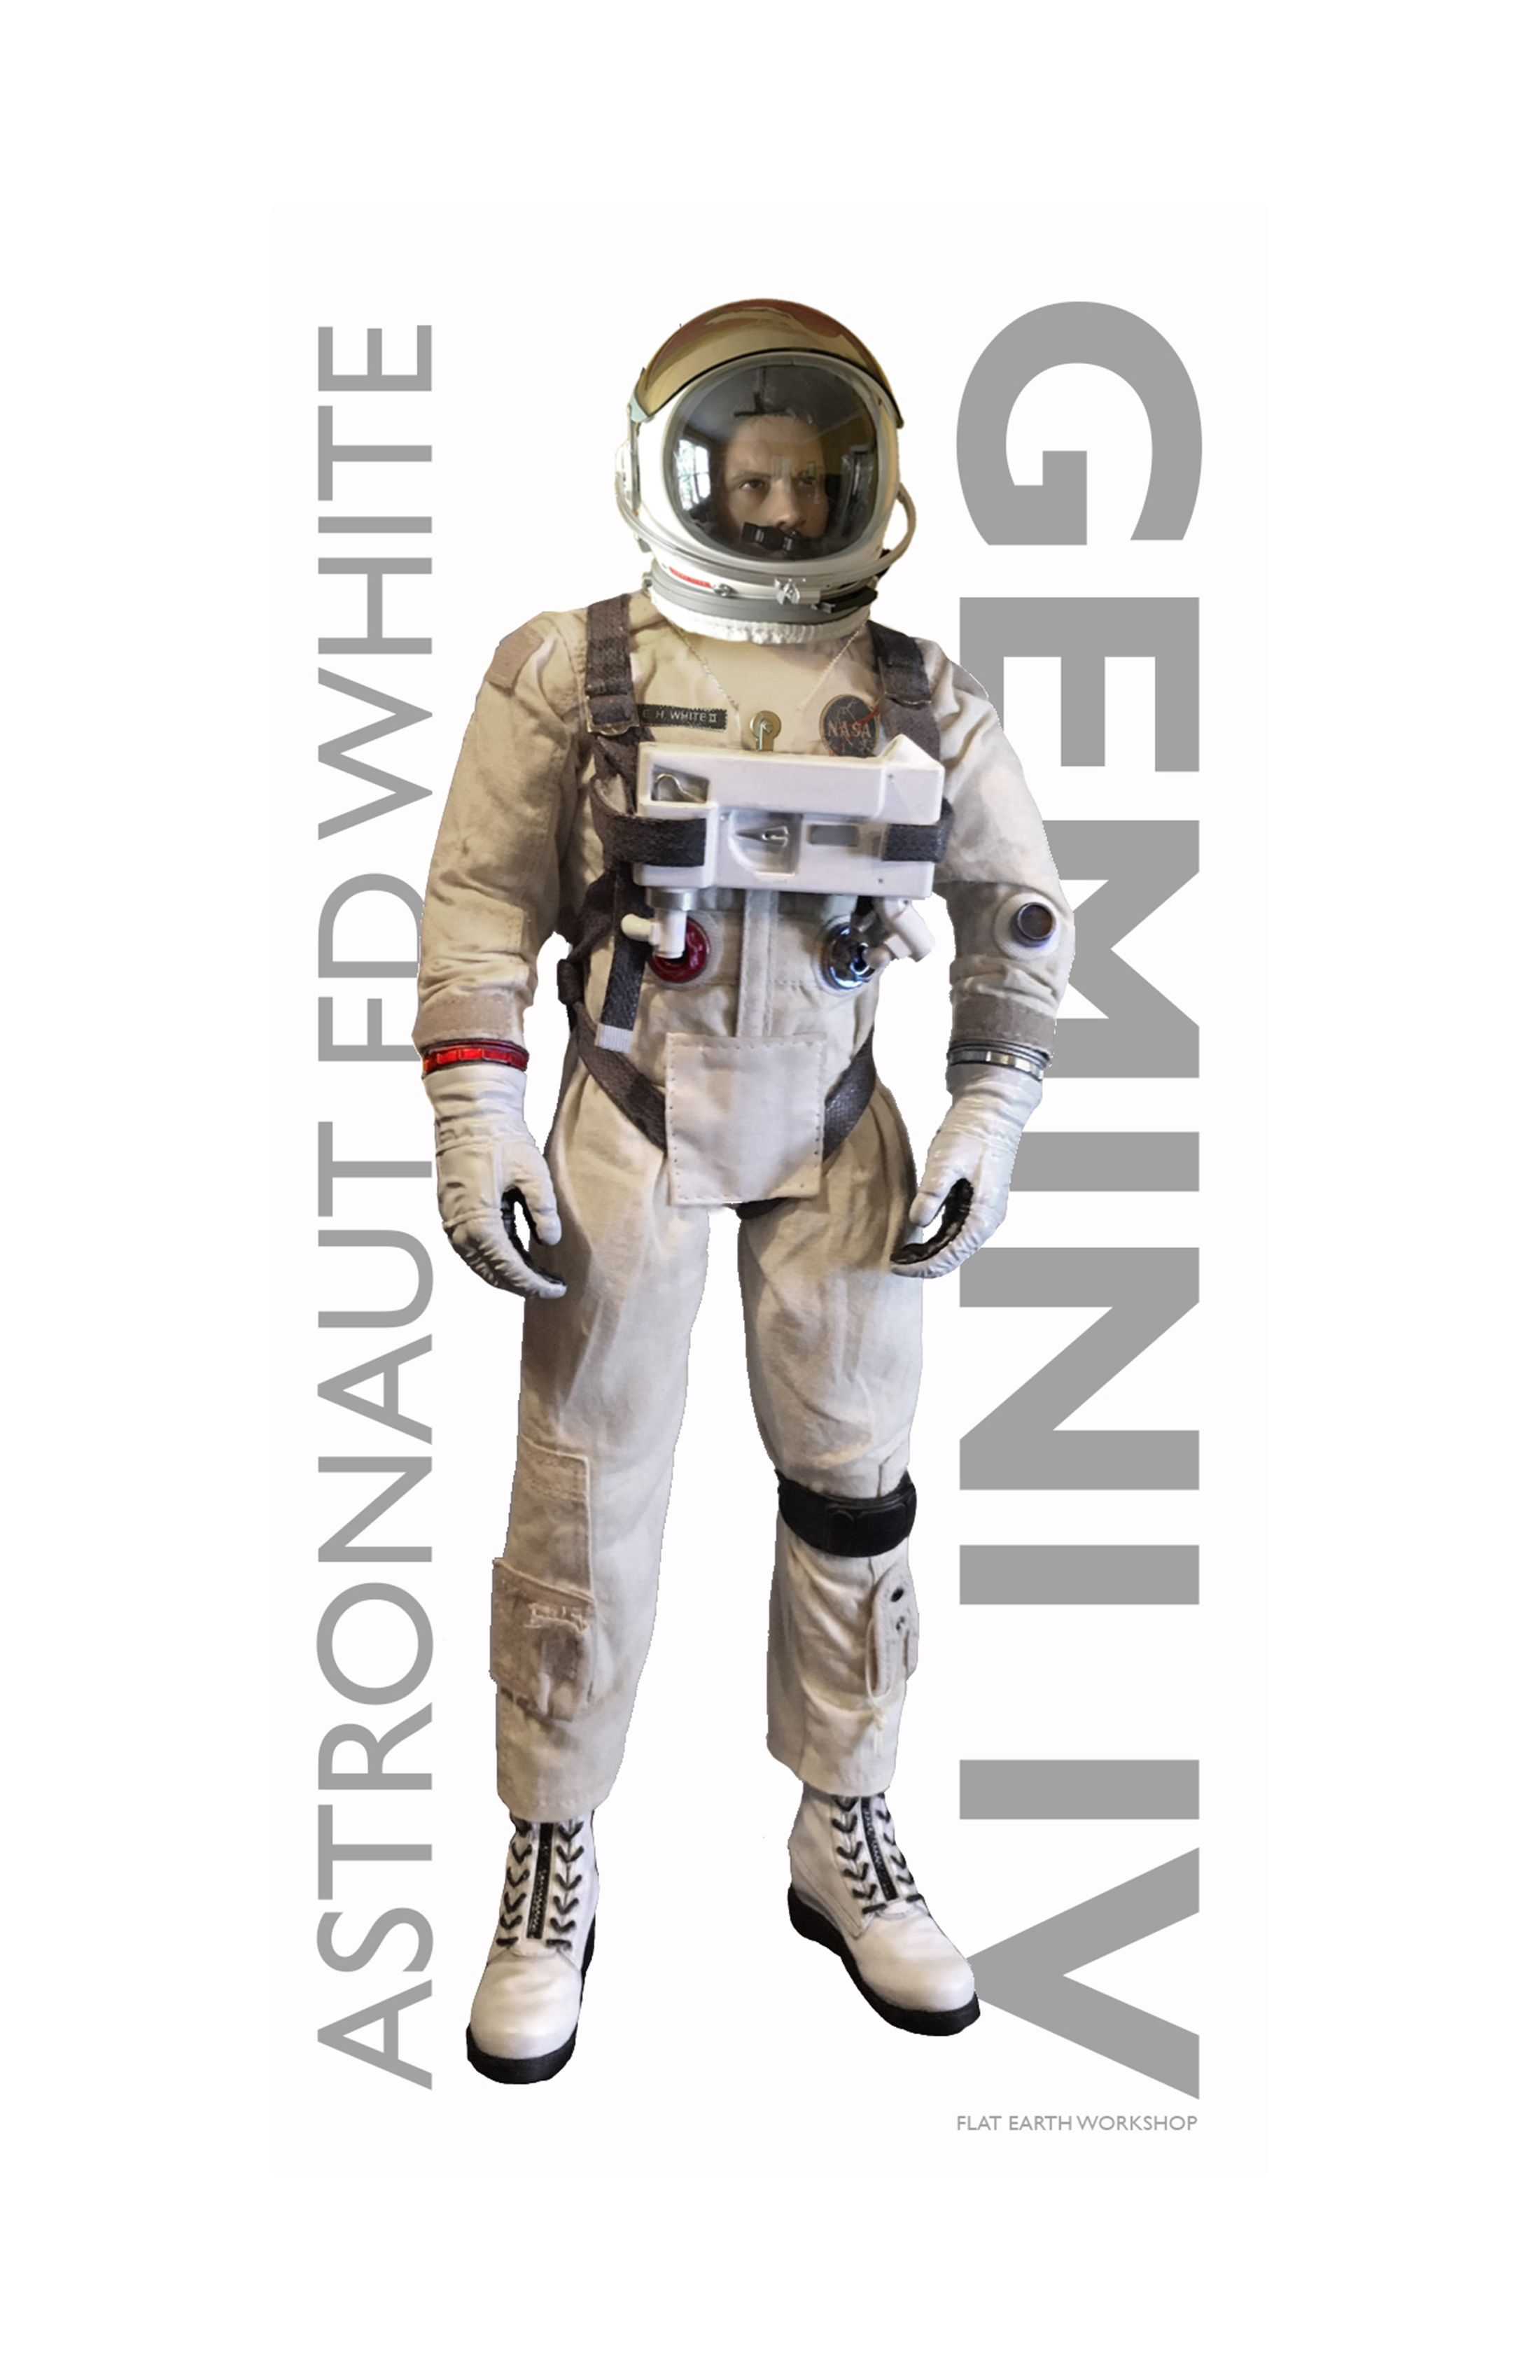 hight resolution of ed white 1 6 figure from gemini iv eva mission created by flat earth workshop now in the collection of adam savage myth busters tested